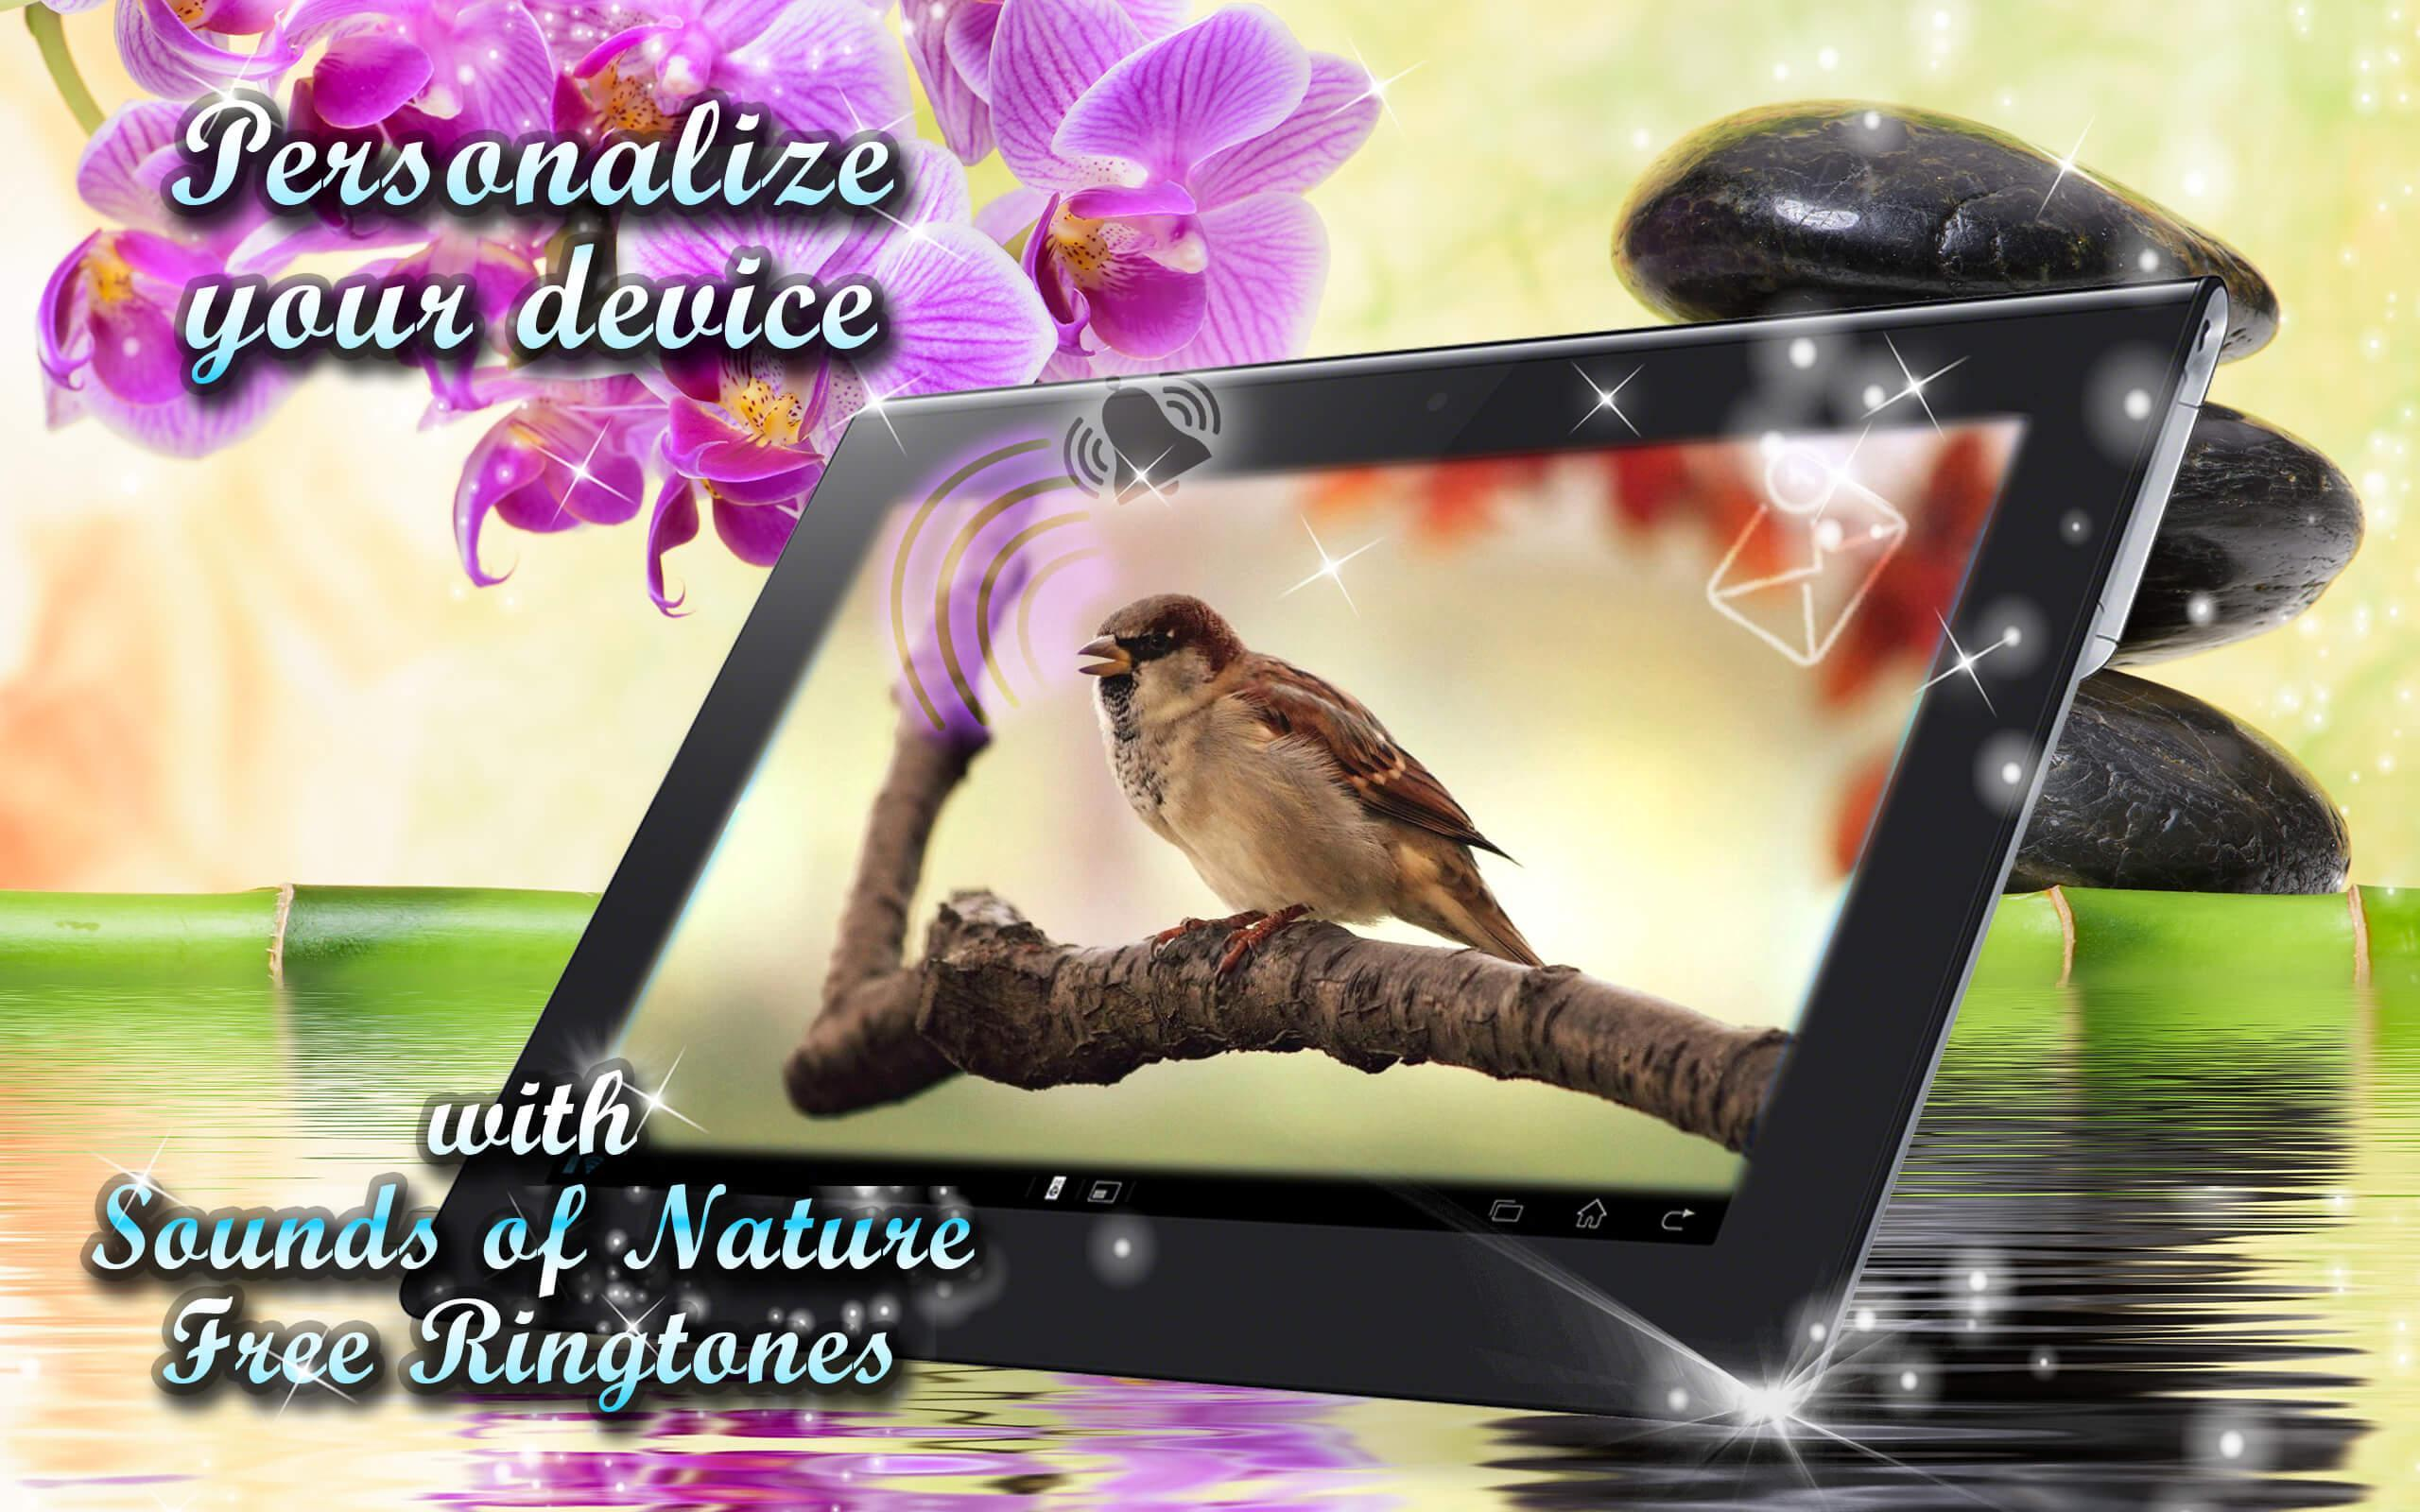 Sounds of Nature Ringtones Free 🌴 Beautiful Tunes for